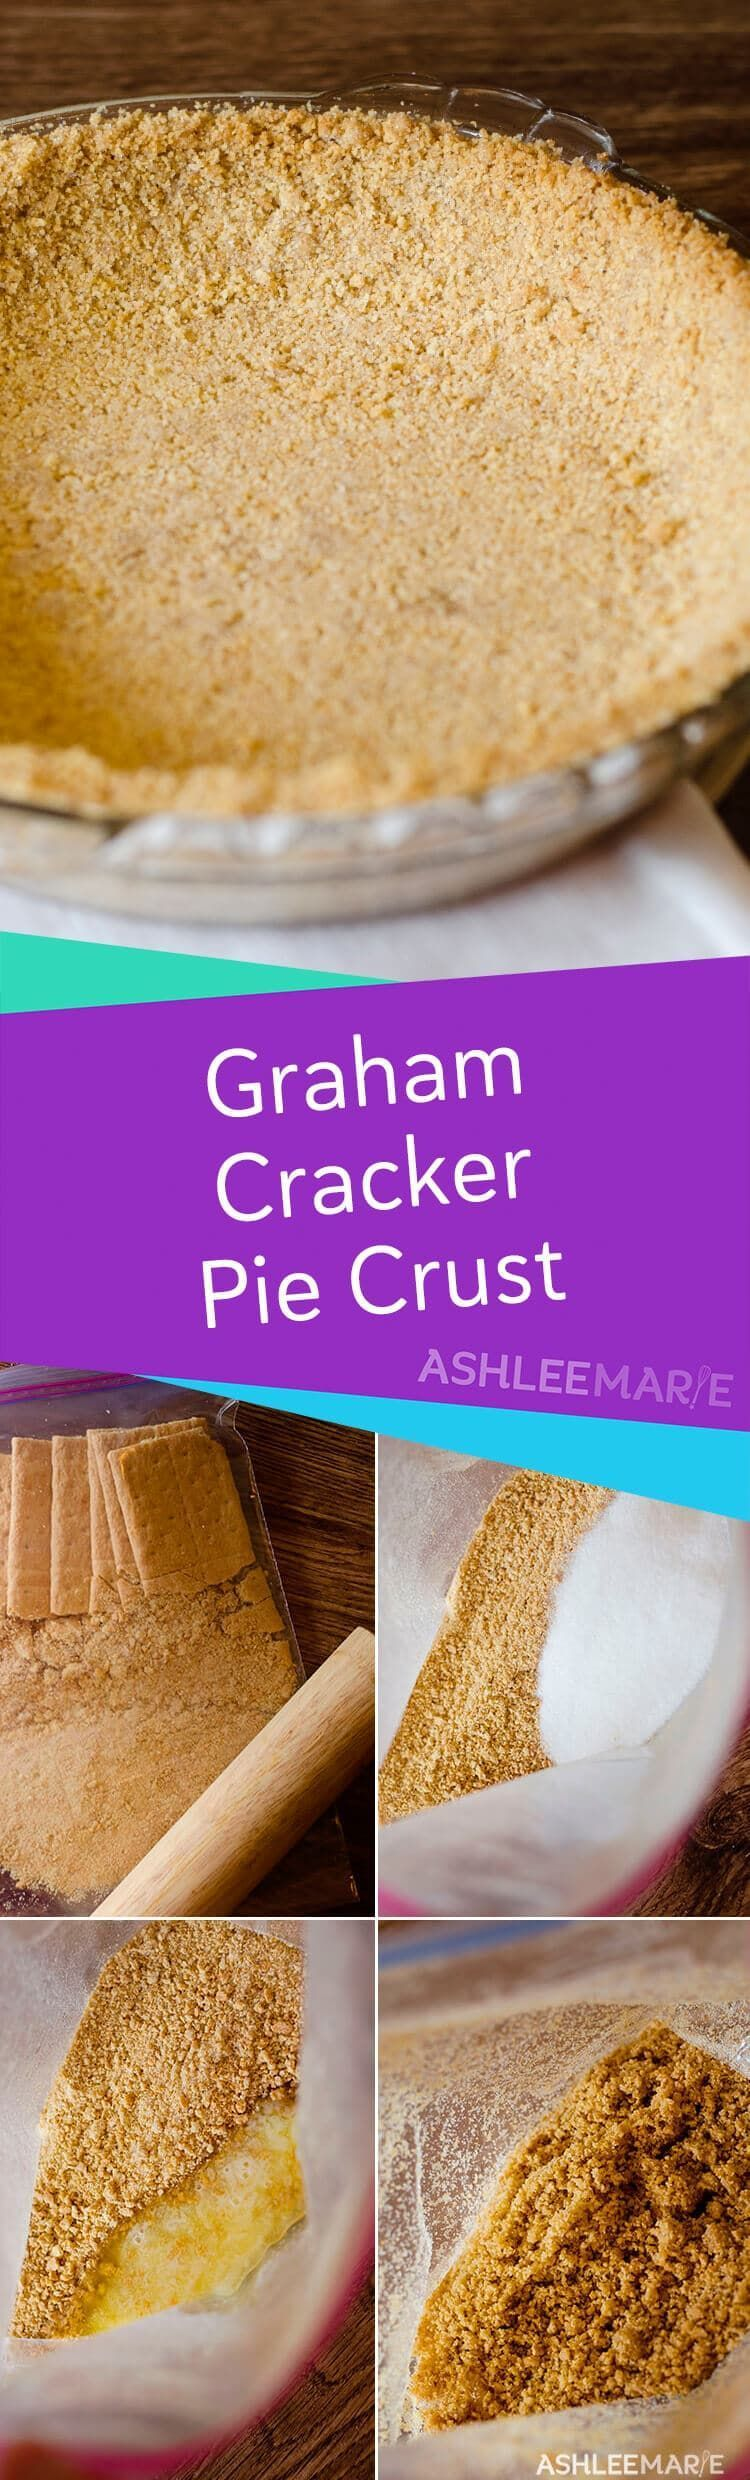 Graham Cracker Crust Recipe | Ashlee Marie - real fun with real food #homemadegrahamcrackercrust Graham Cracker Crust Recipe | Ashlee Marie - real fun with real food #homemadegrahamcrackercrust Graham Cracker Crust Recipe | Ashlee Marie - real fun with real food #homemadegrahamcrackercrust Graham Cracker Crust Recipe | Ashlee Marie - real fun with real food #homemadegrahamcrackercrust